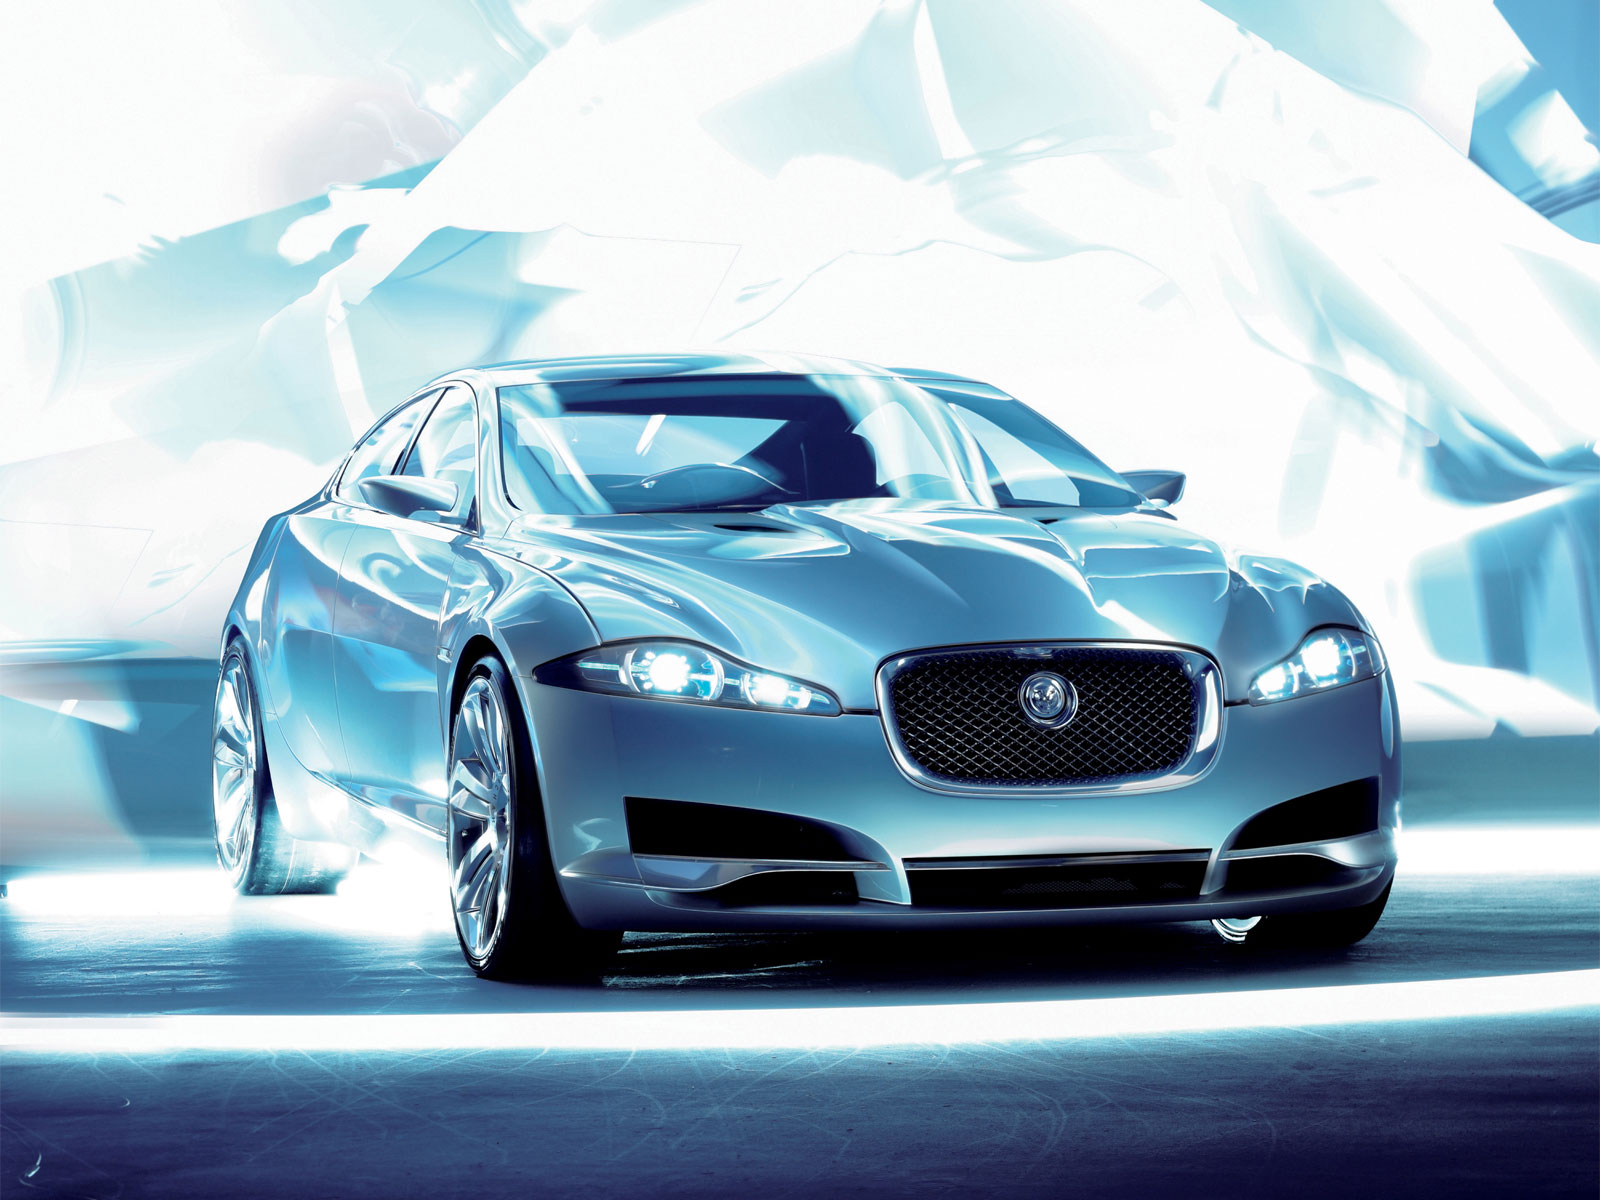 Jaguar Cars HD Wallpapers Jaguar HD Wallpapers Free